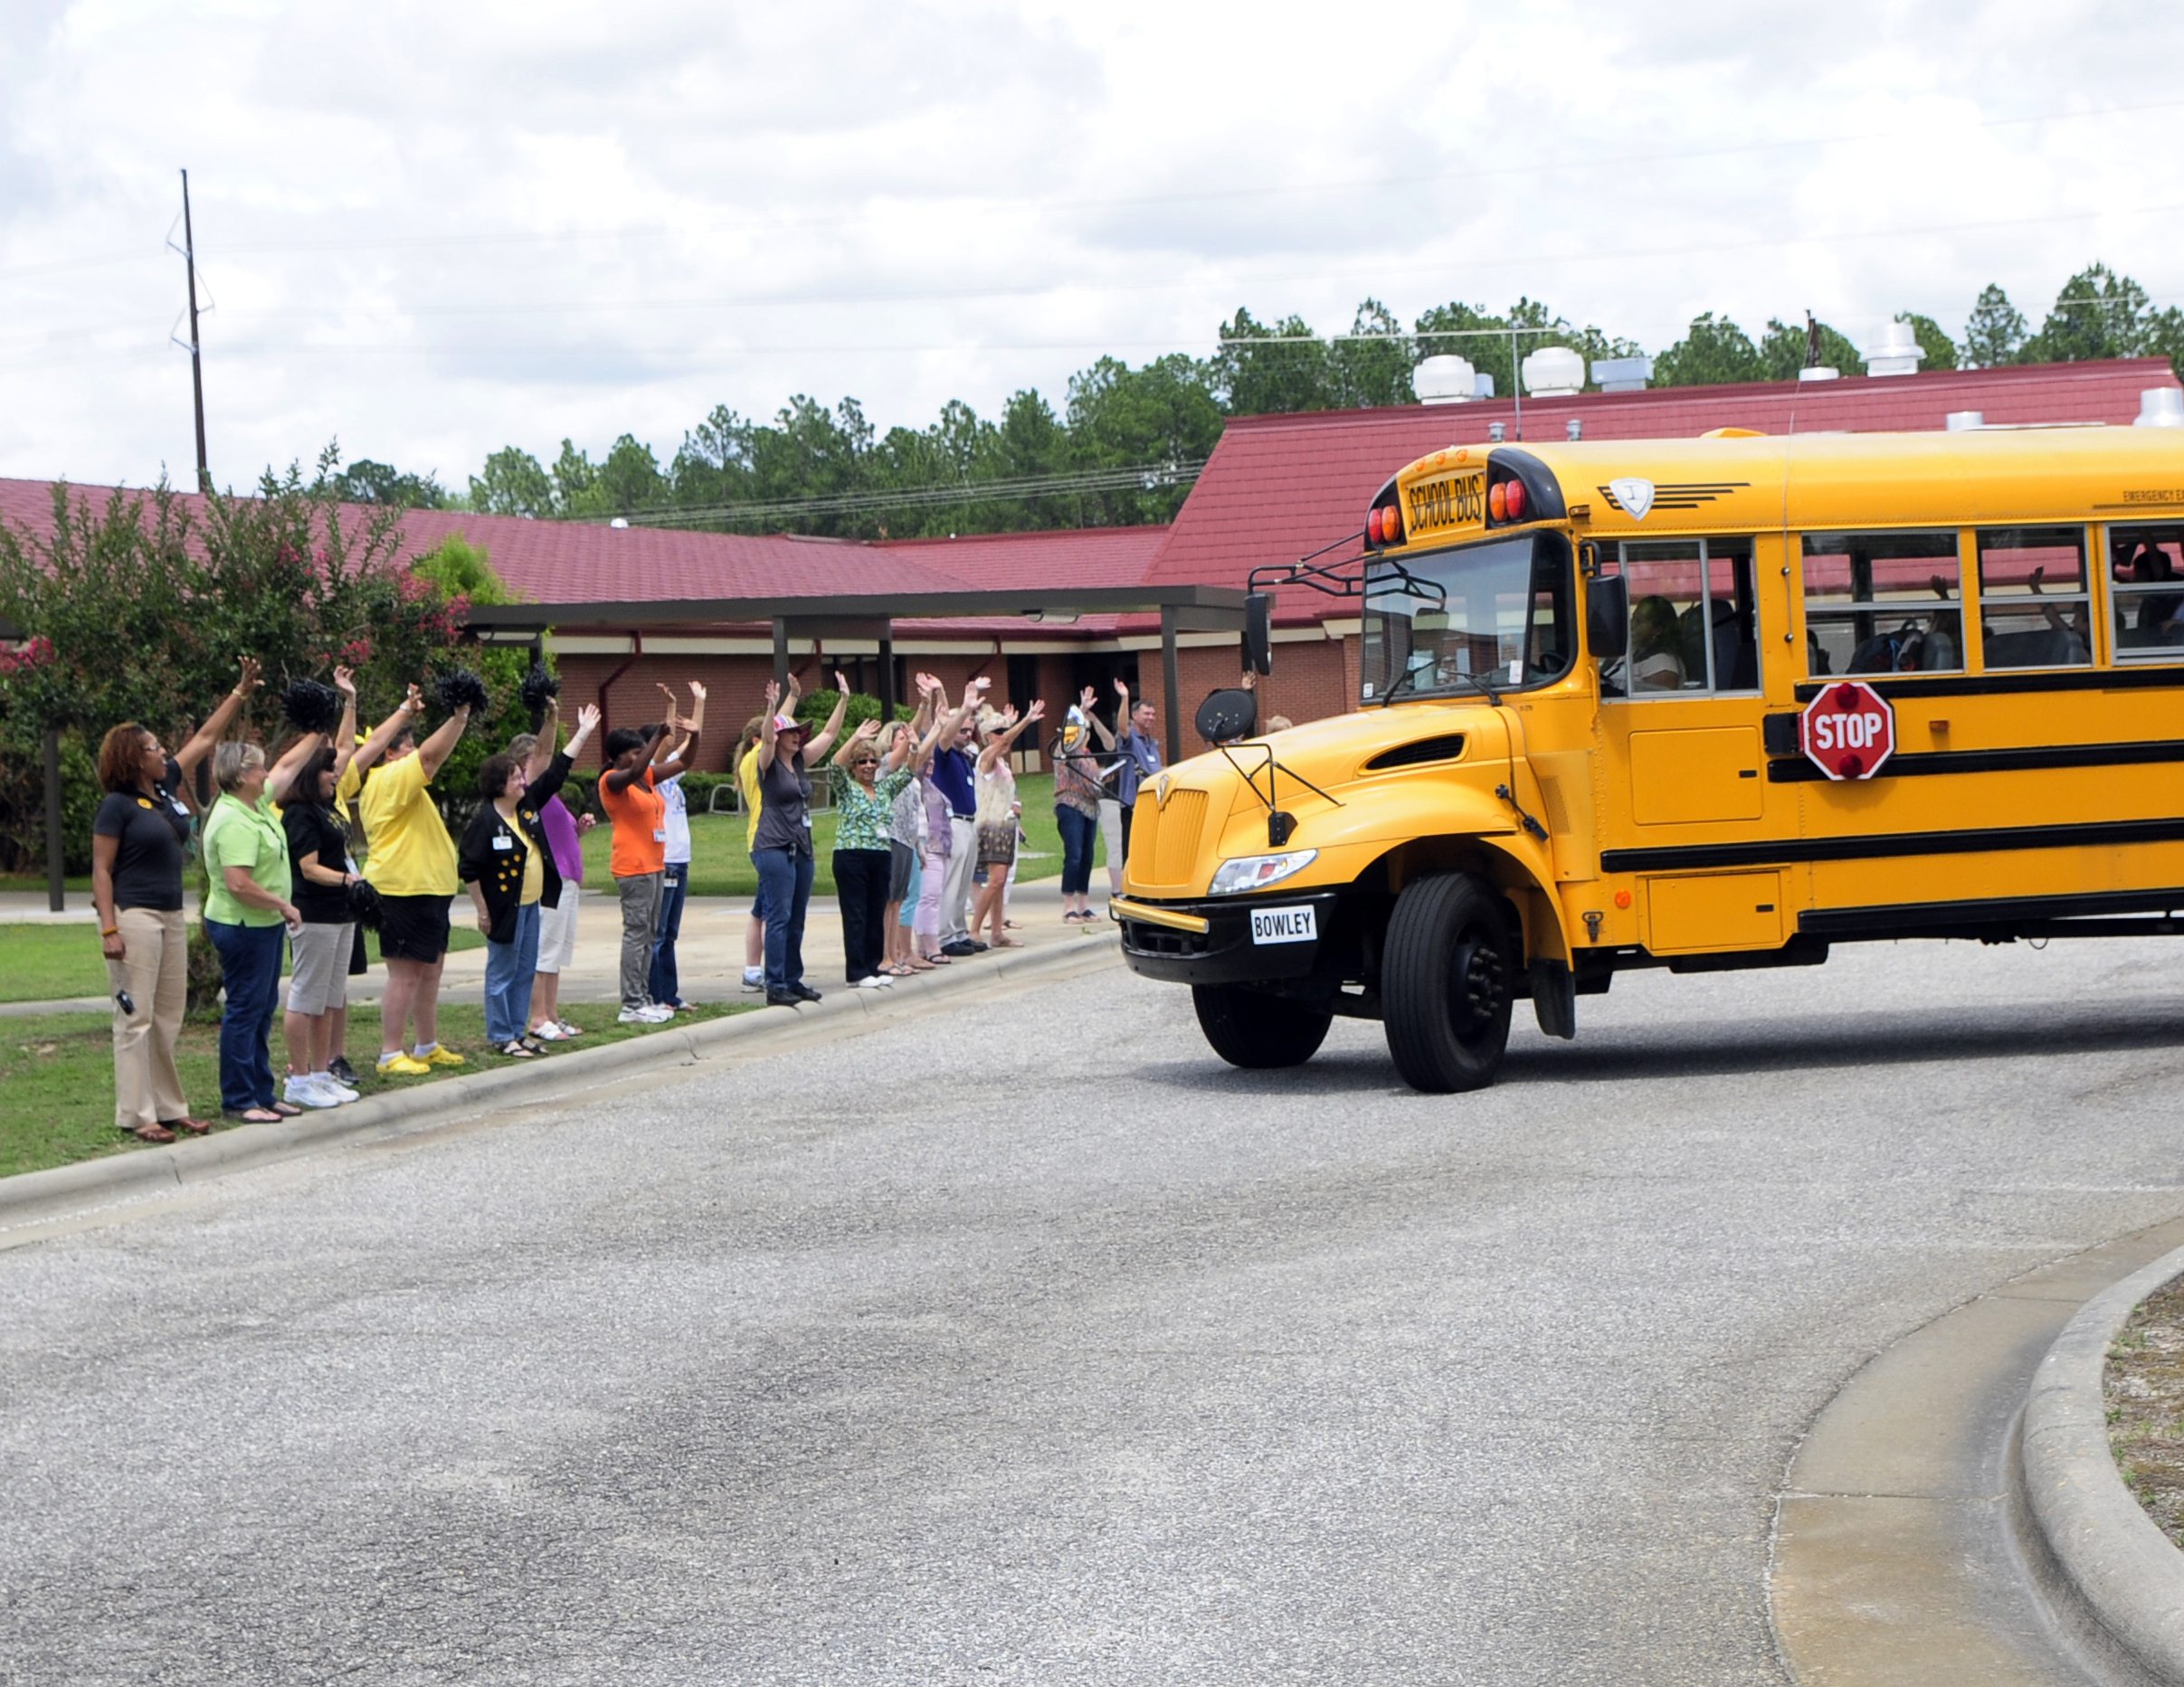 Teachers and administrative staff wave goodbye to students (Wikimedia Commons)